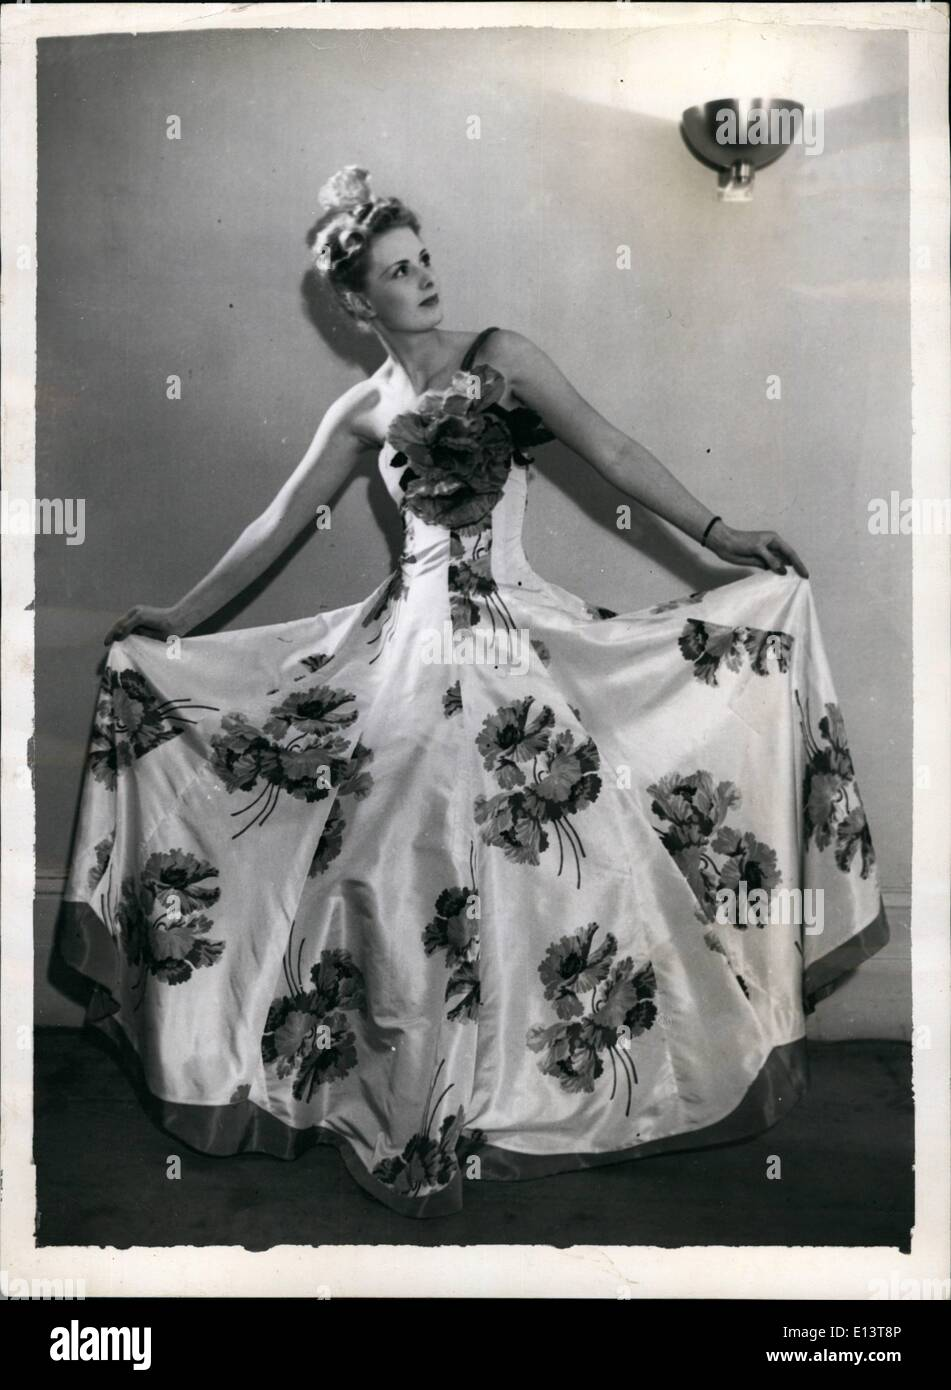 Mar. 27, 2012 - New Creations for the evening . A smart creation for evening wear by tinling. It is in white Taffeta and Features a bold design of Large red poppies. The bodice is strapless and is decorated with a large bunch of poppies. - Stock Image